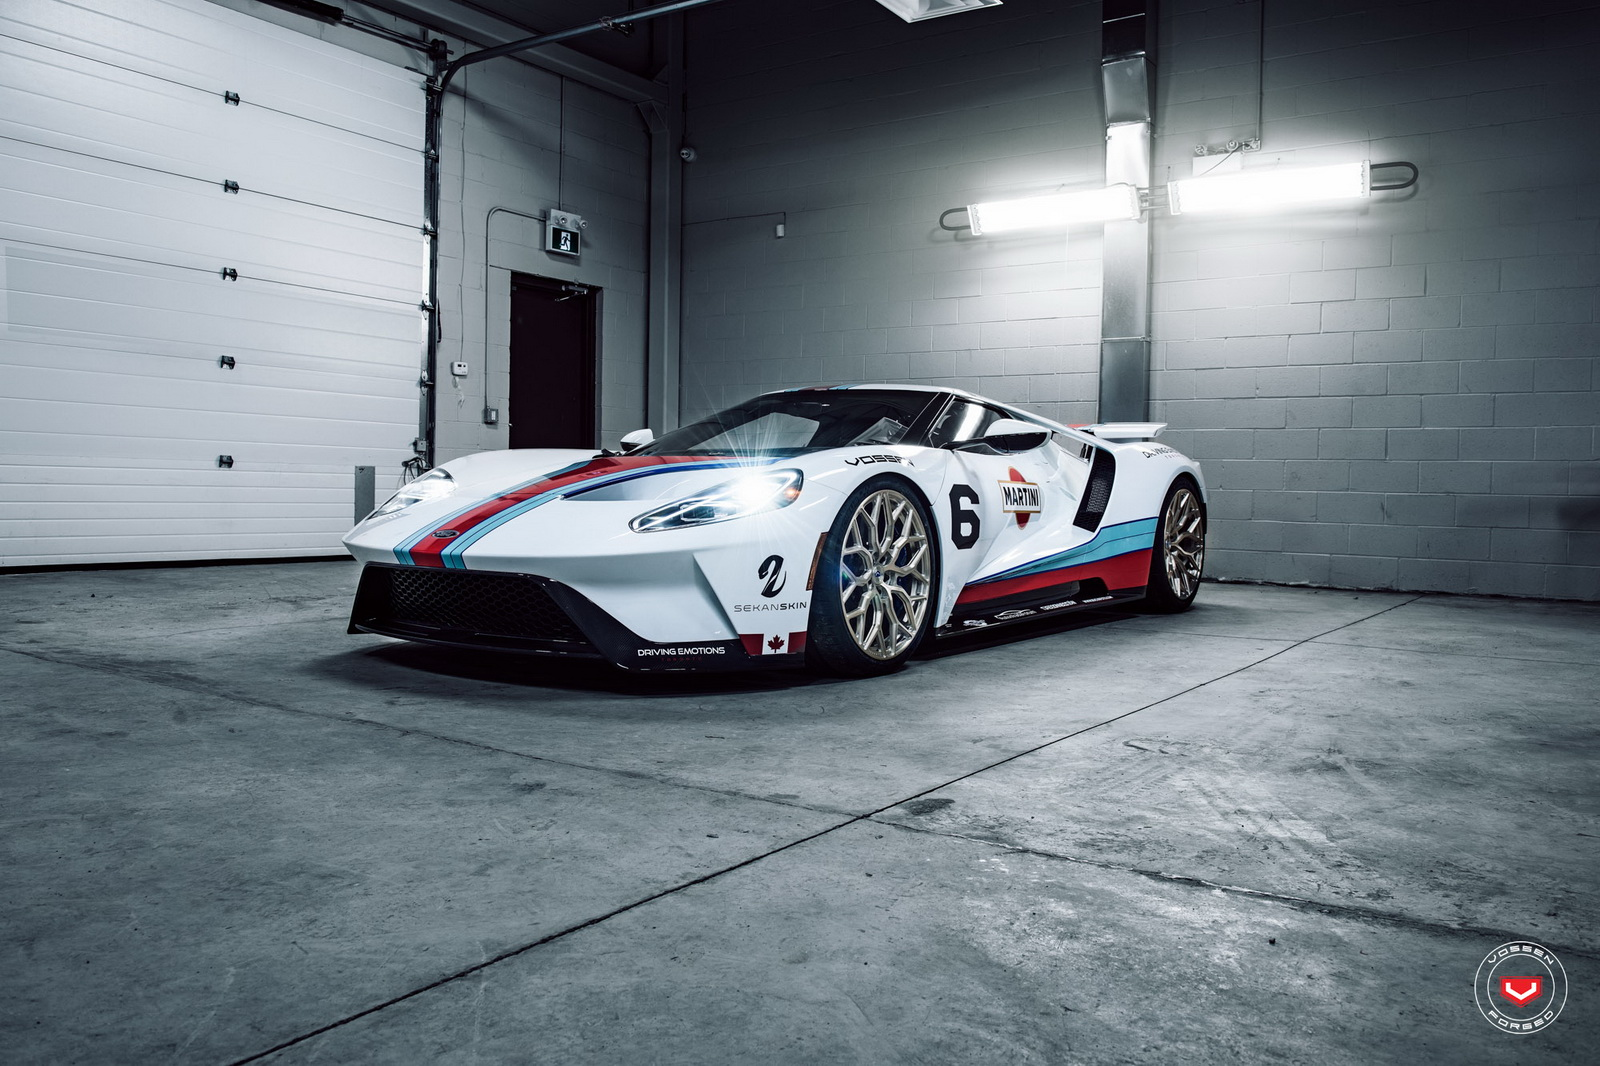 ford-gt-martini-livery-vossen-wheels-9